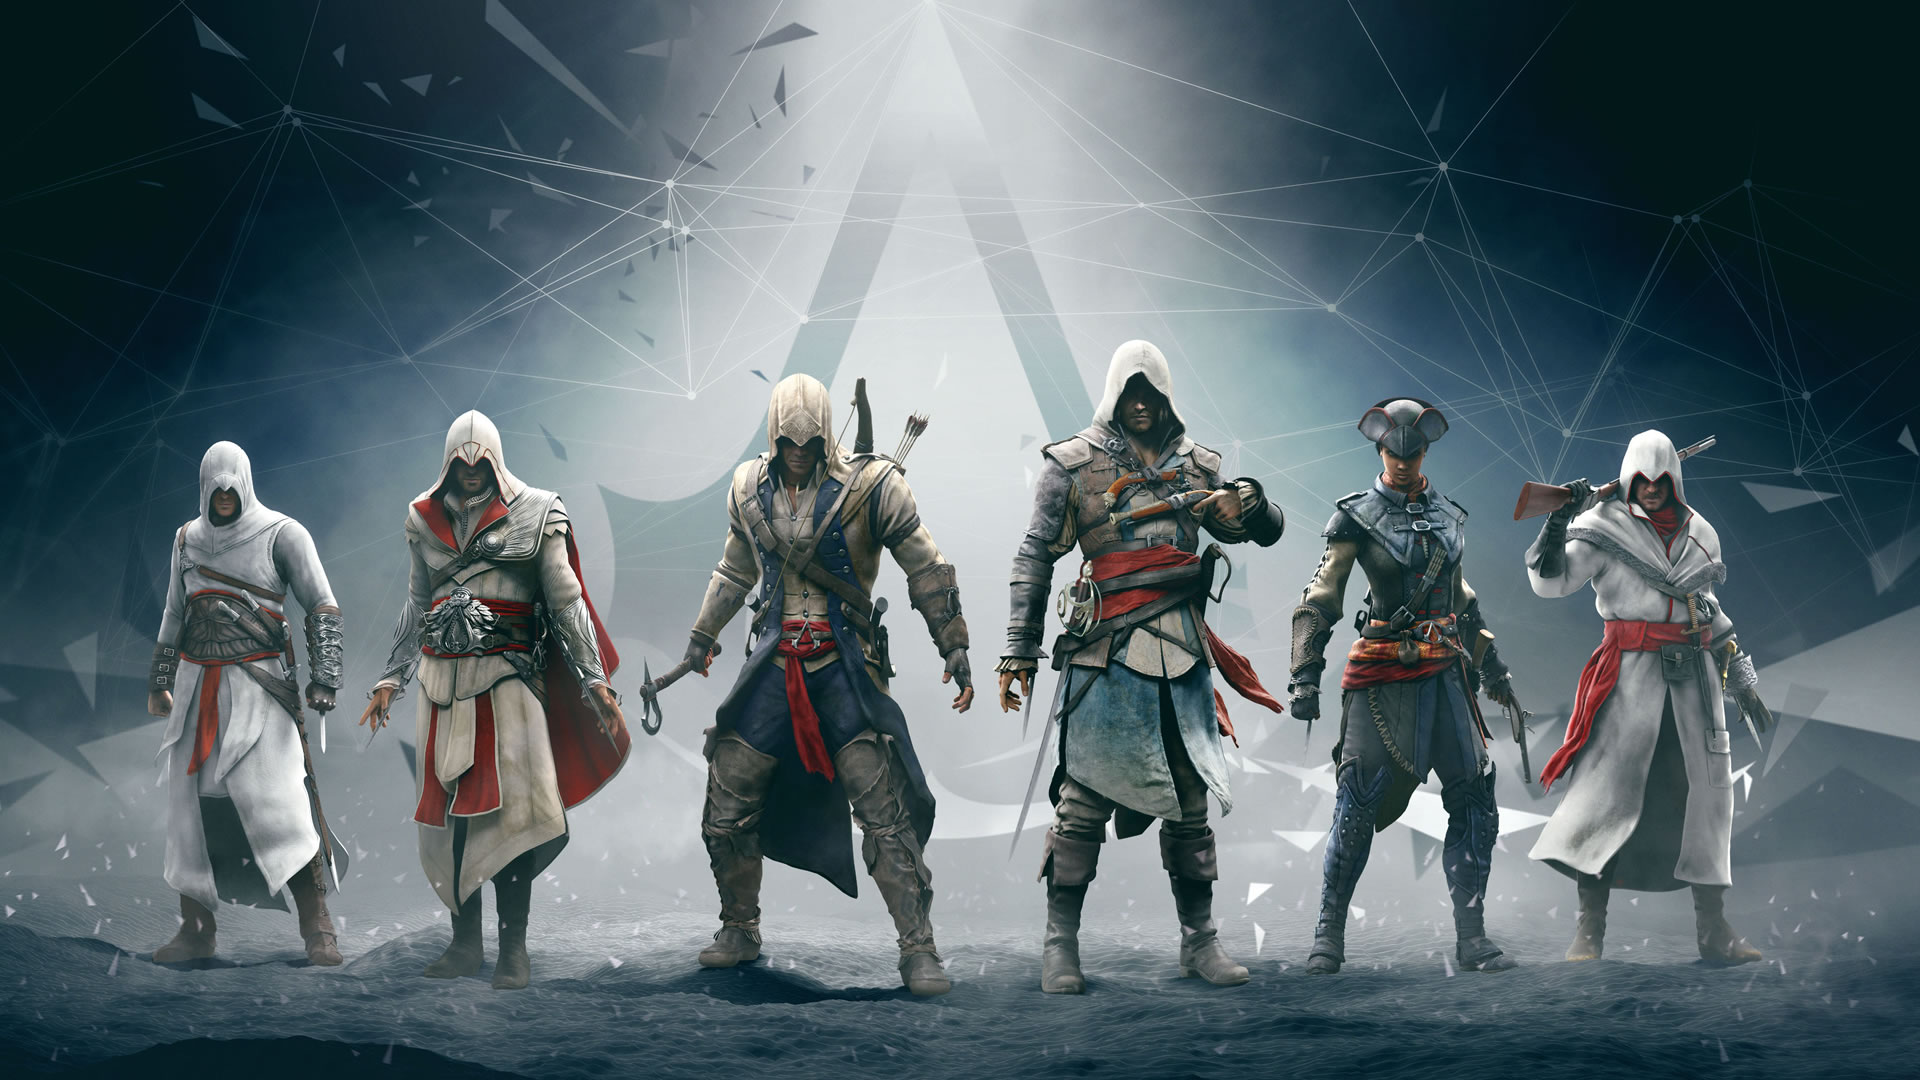 Assassins creed full hd wallpaper and background image 1920x1080 video game assassins creed altair assassins creed ezio assassins creed connor voltagebd Gallery